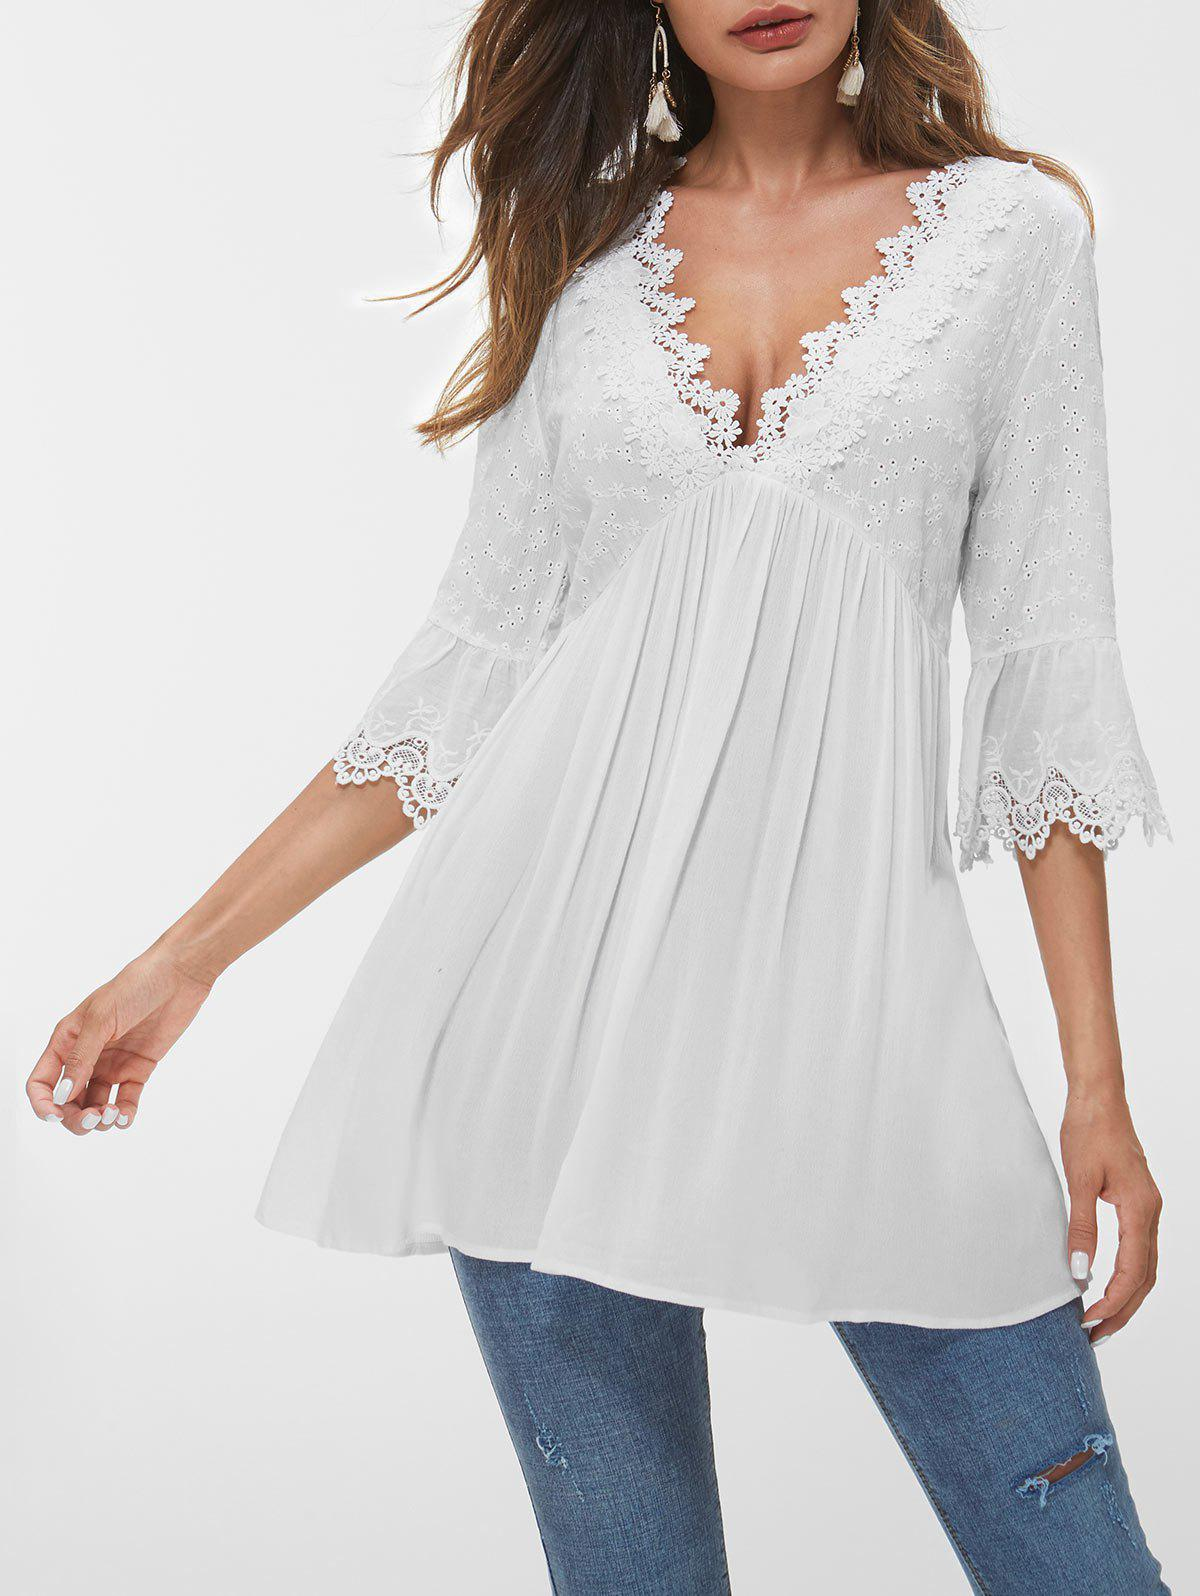 Hot Flare Sleeve Lace Panel Eyelet Blouse